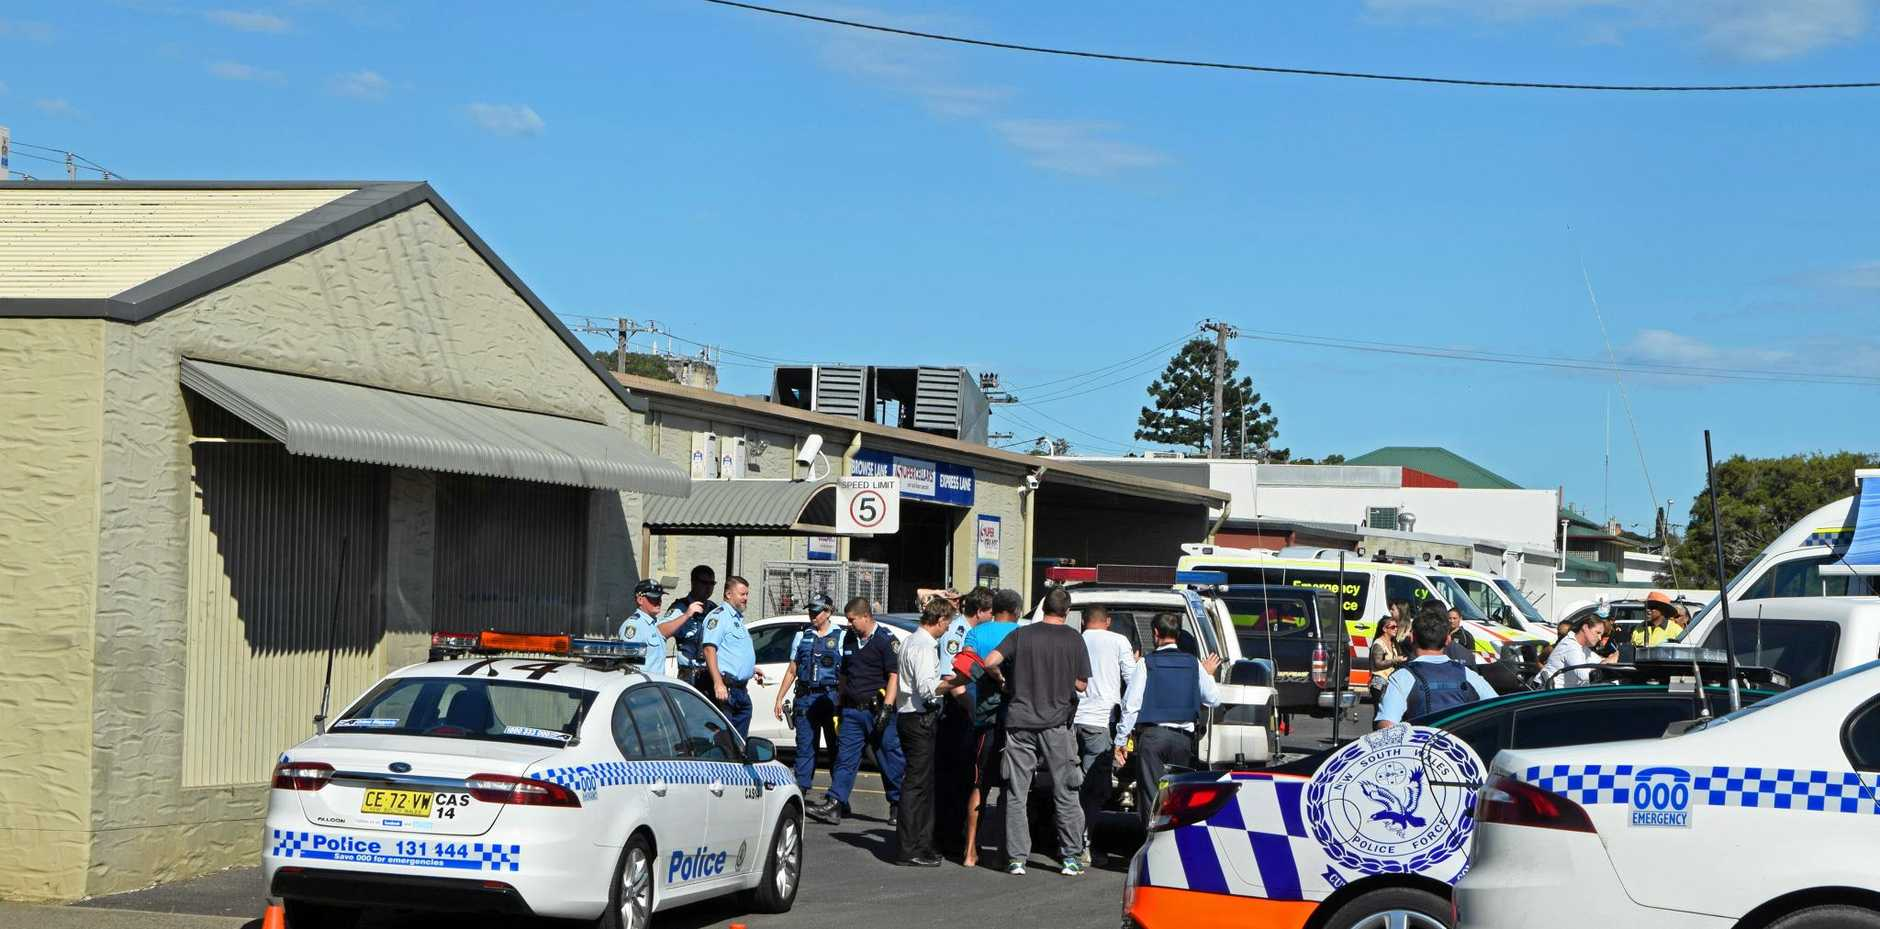 Hostage situation at Hotel Cecil in Casino, Barker St  where a man held a female bar staff at knifepoint. Resolved safely by police at 12.53pm Wednesday, May 24.